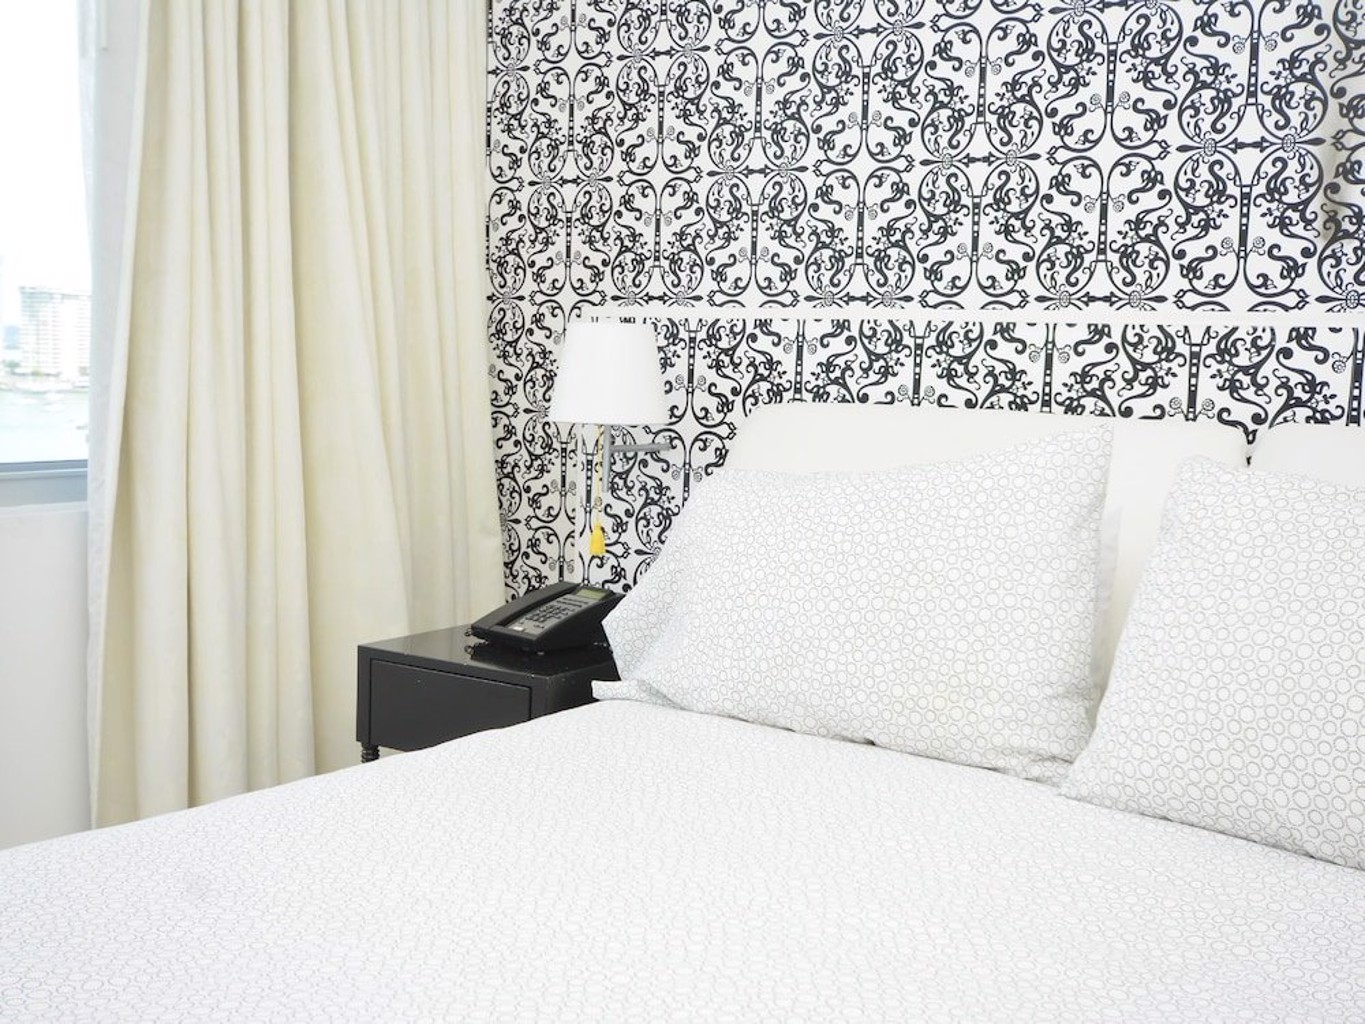 Huge Suite 3 Rooms up to 9p 5 Hotel Sobe #916